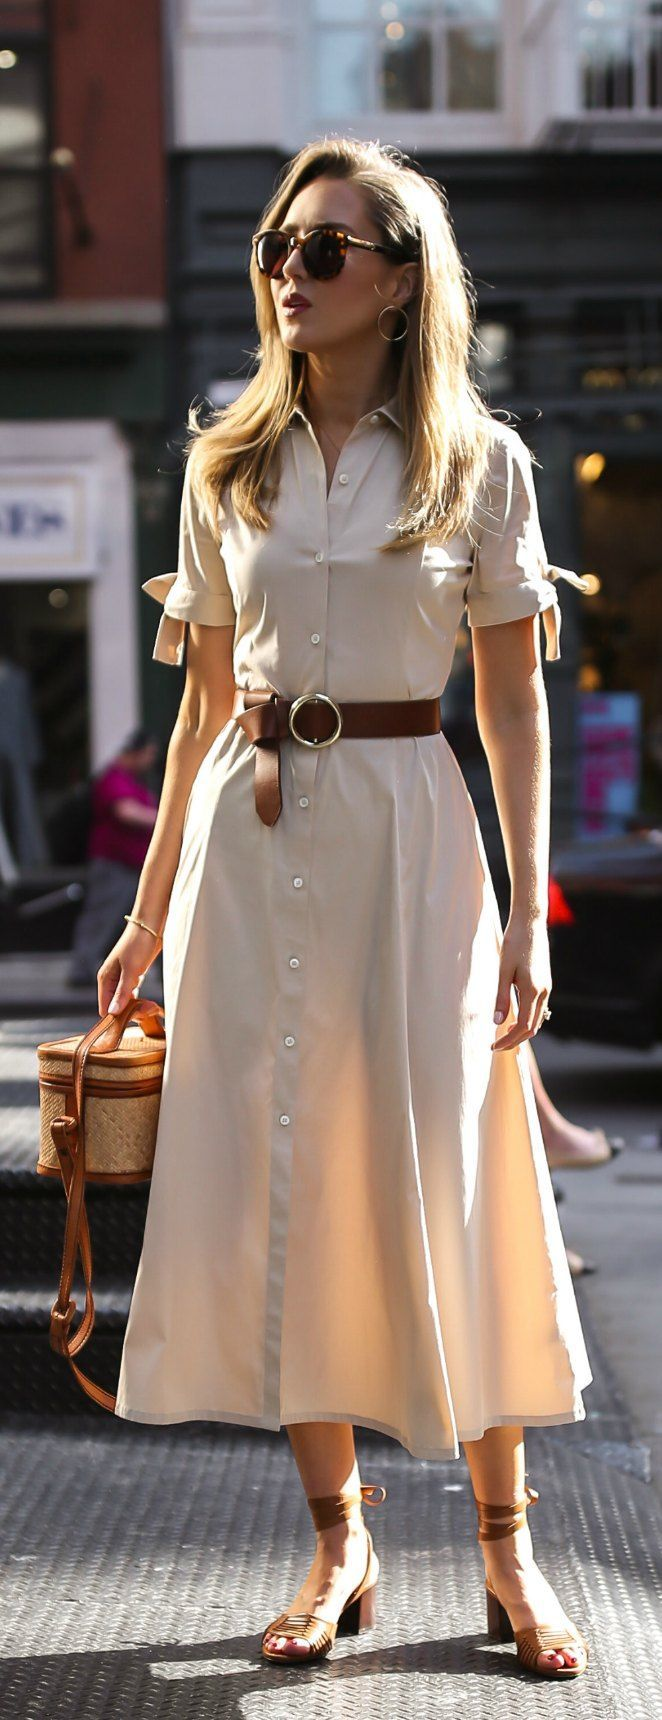 30 Dresses In 30 Days Day 18 Casual Friday Khaki Short Sleeve Button Down Midi Dress Brown Waist Belt Trendy Dresses Casual Dresses Summer Work Outfits [ 1720 x 662 Pixel ]